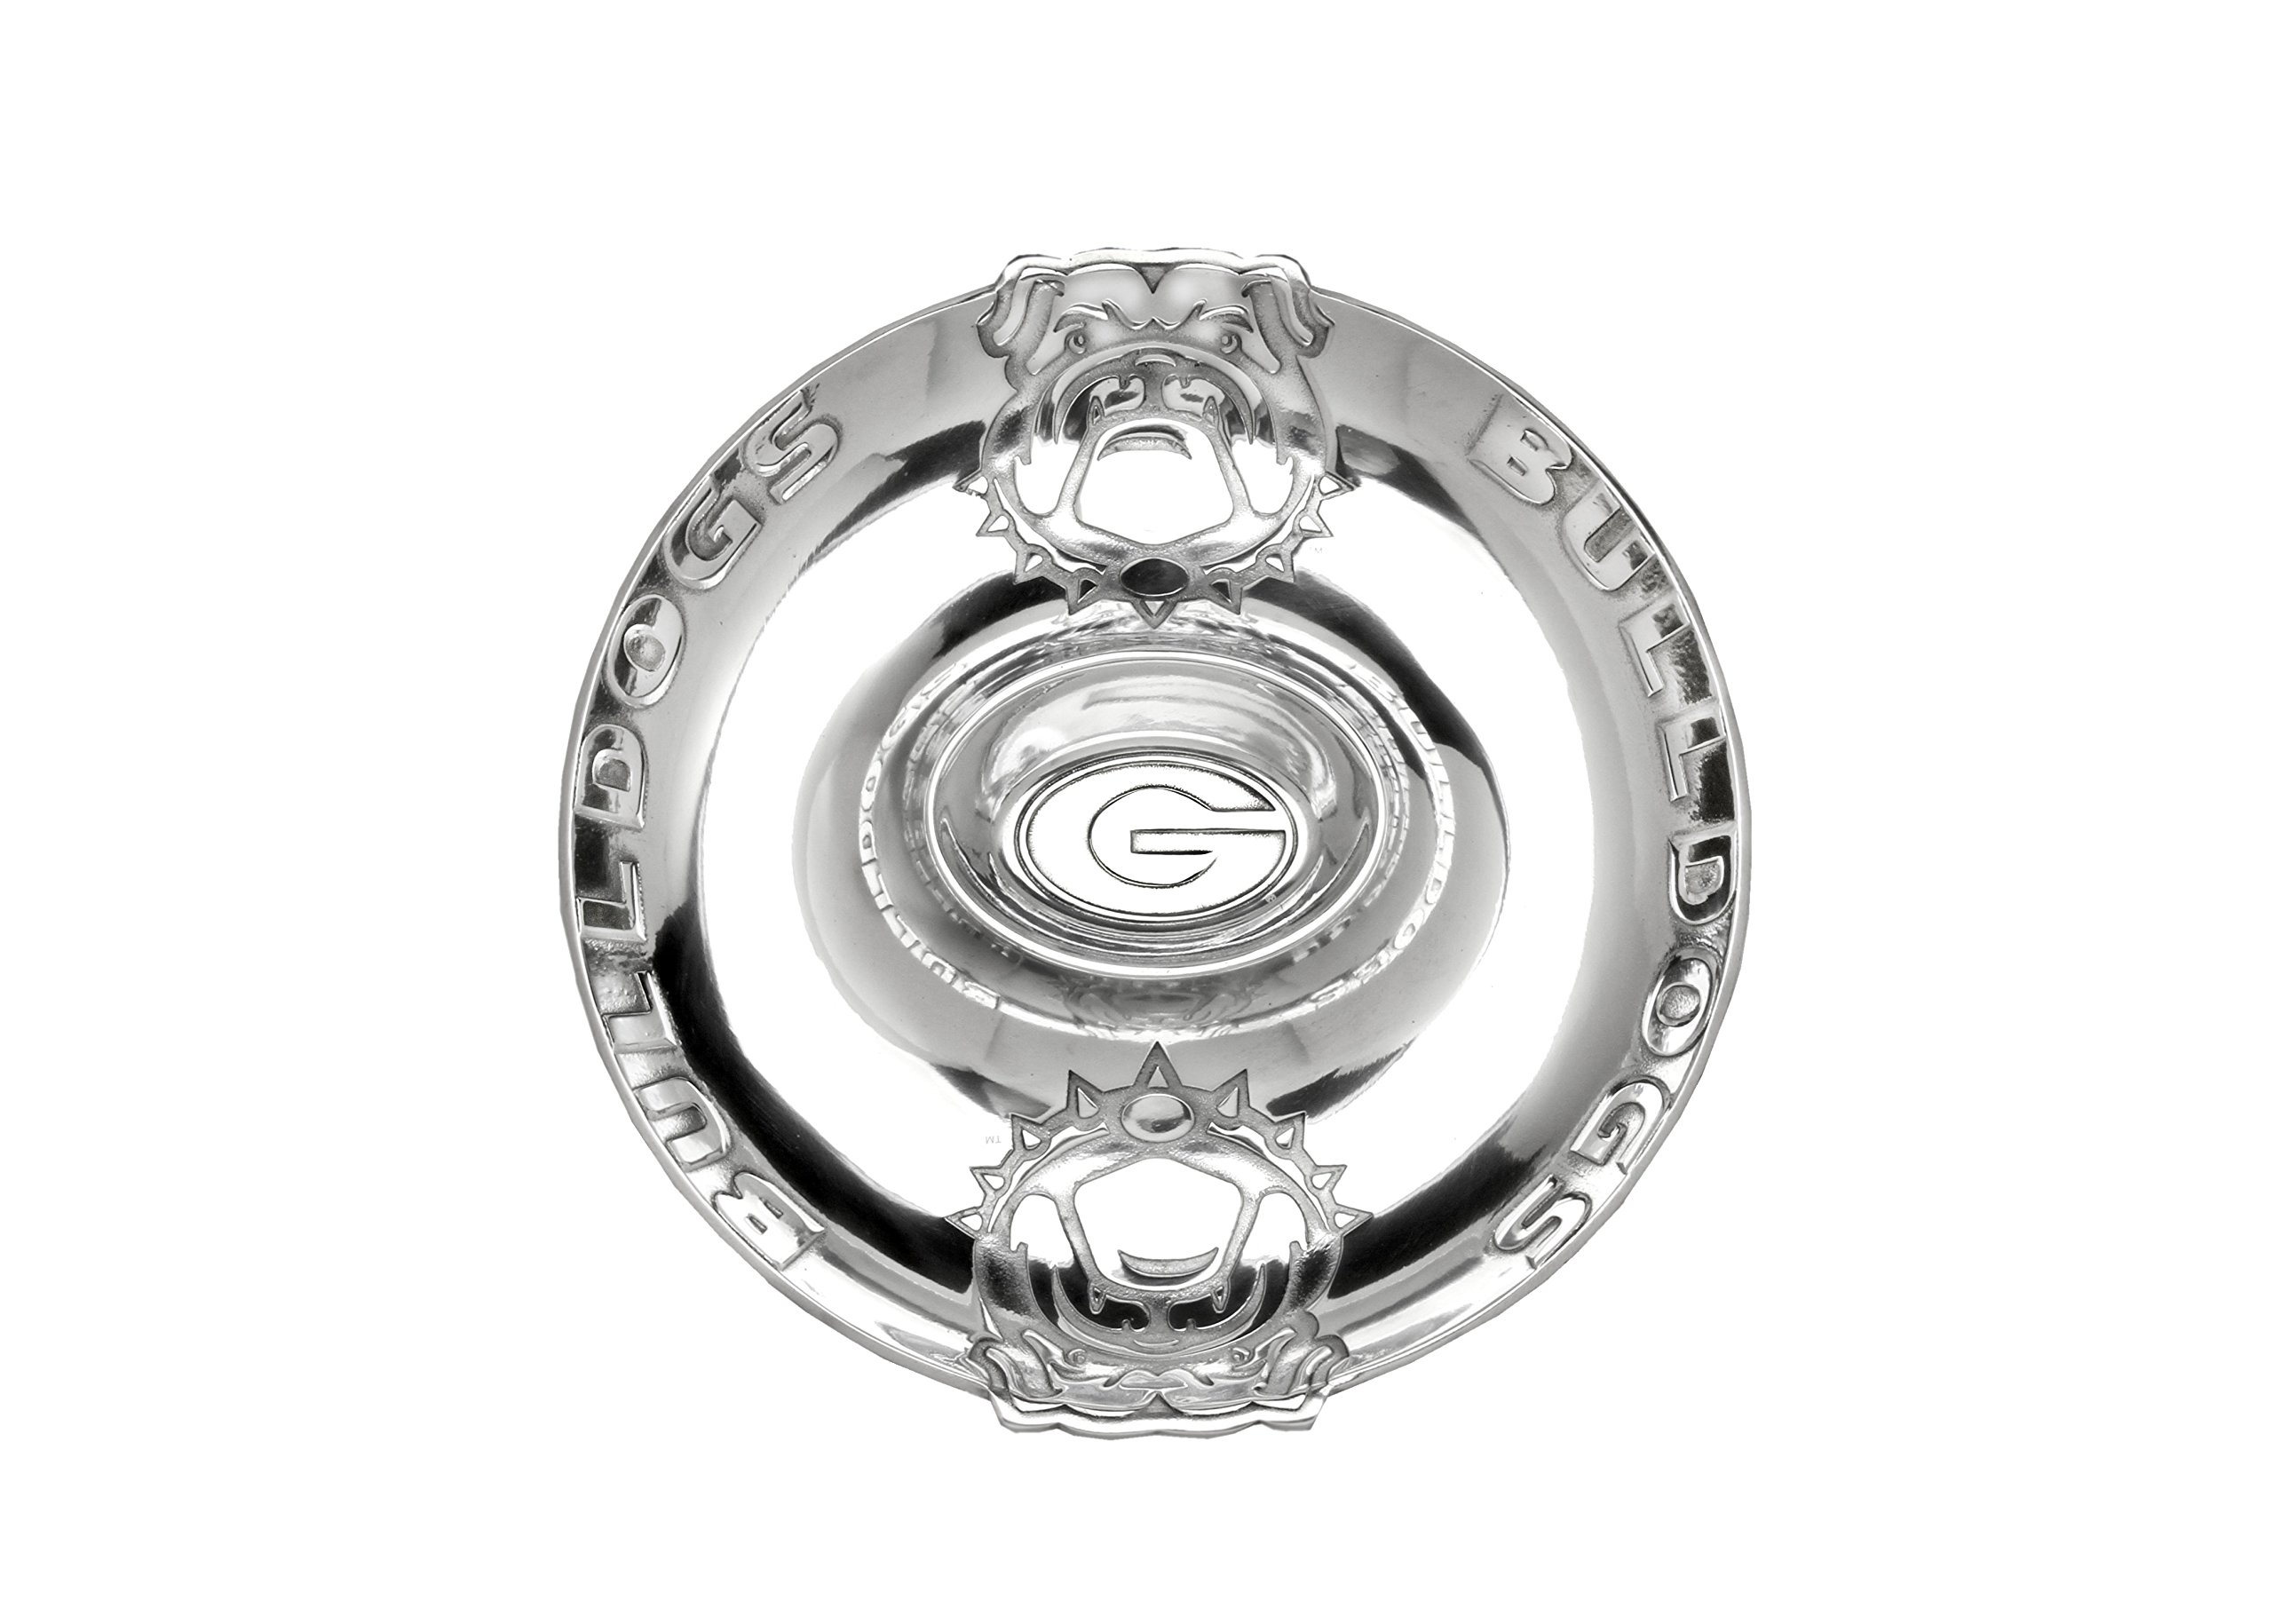 Aluminum University of Georgia Chip & Dip Serving Tray 14 inch Long by Arthur Court Designs by Arthur Court (Image #1)